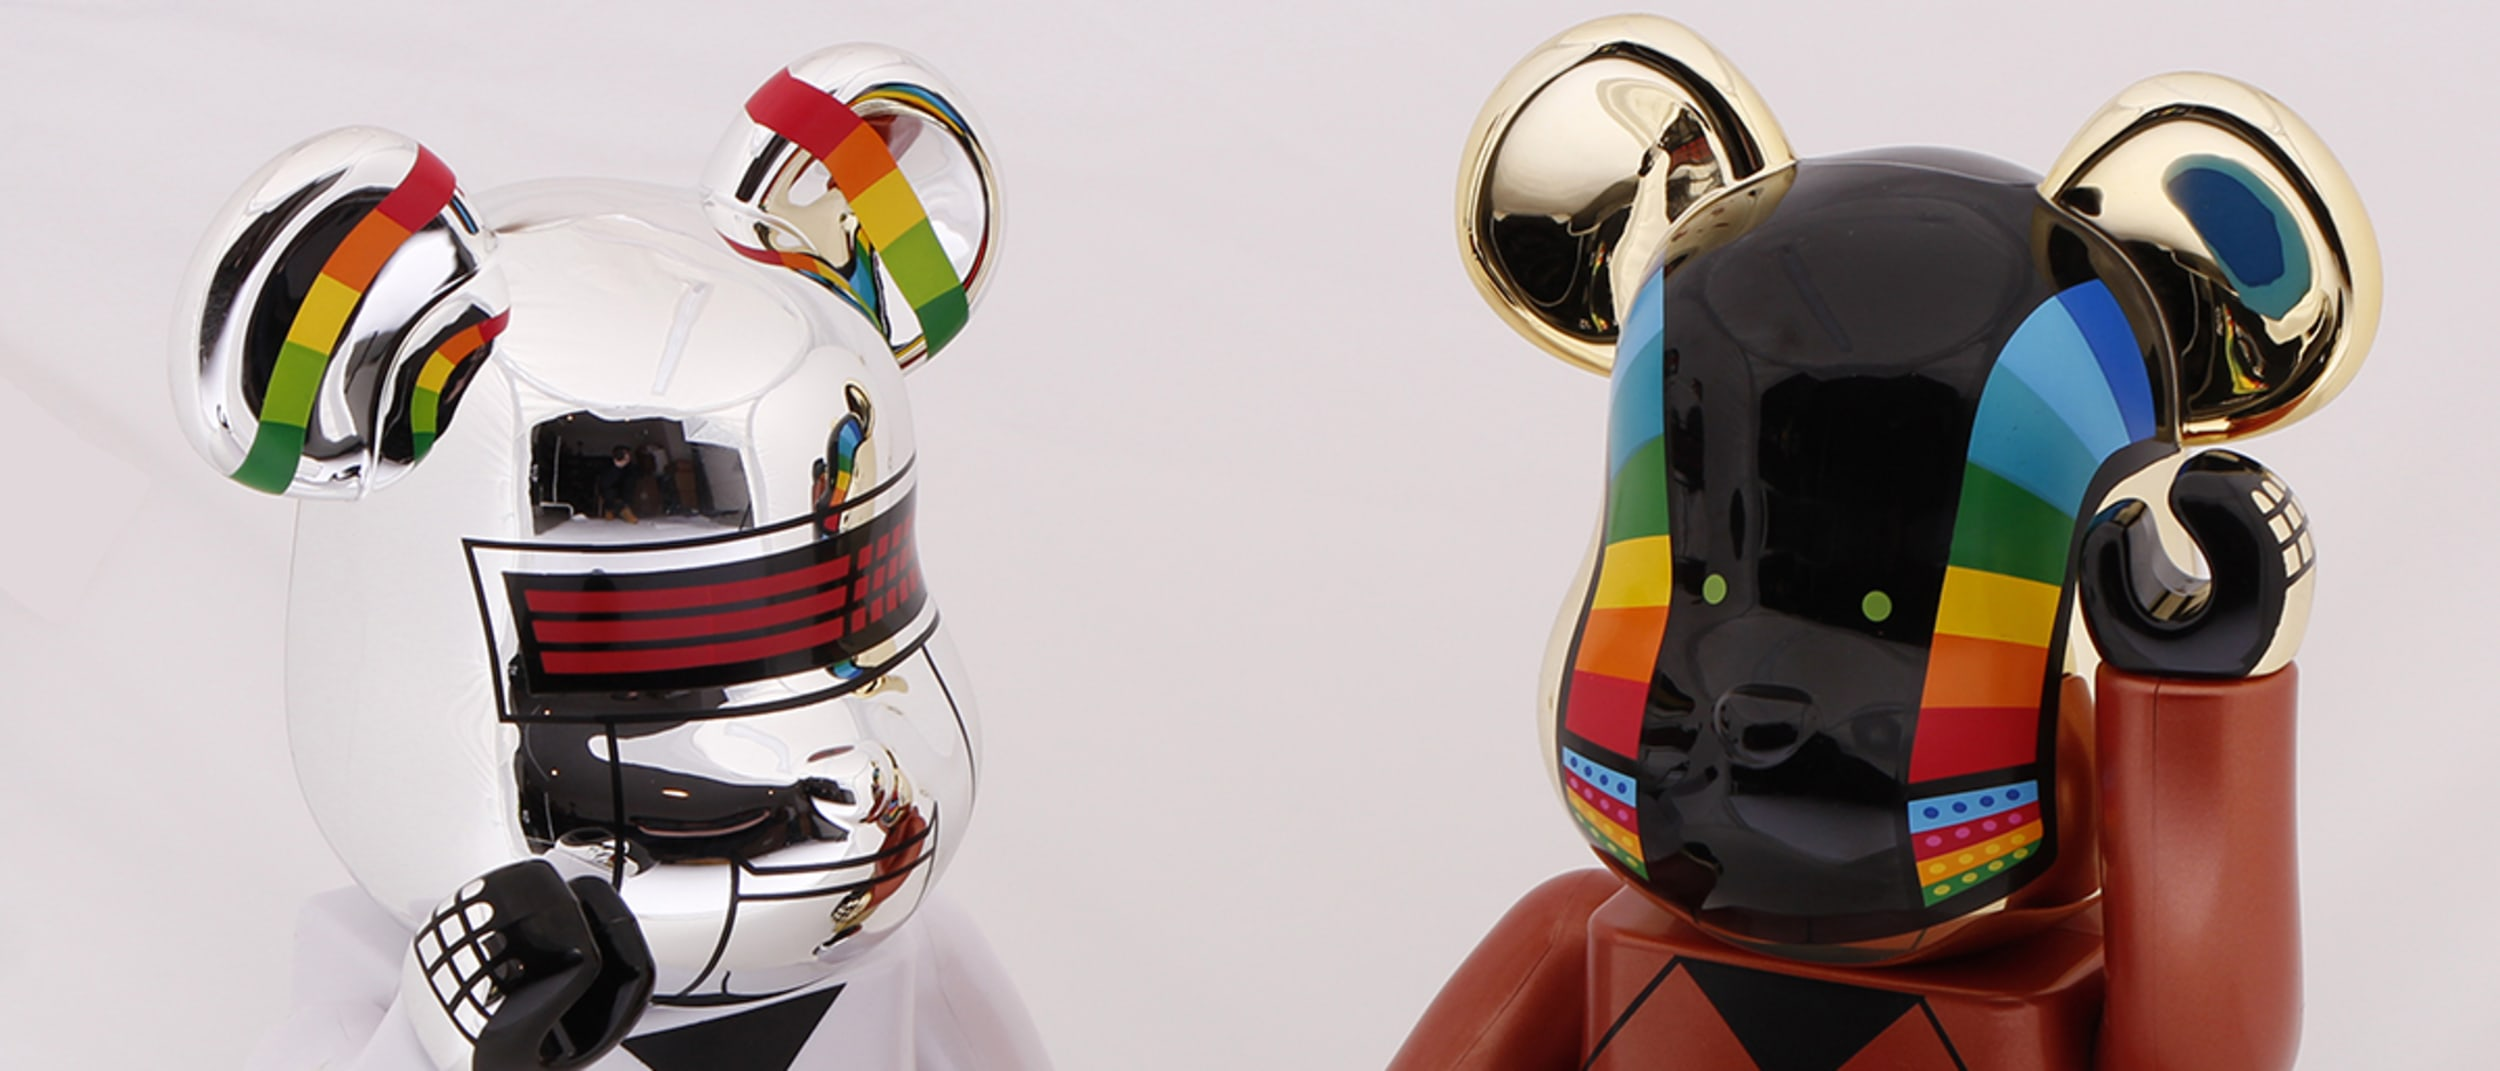 Pict: Limited release Daft Punk BE@RBRICK